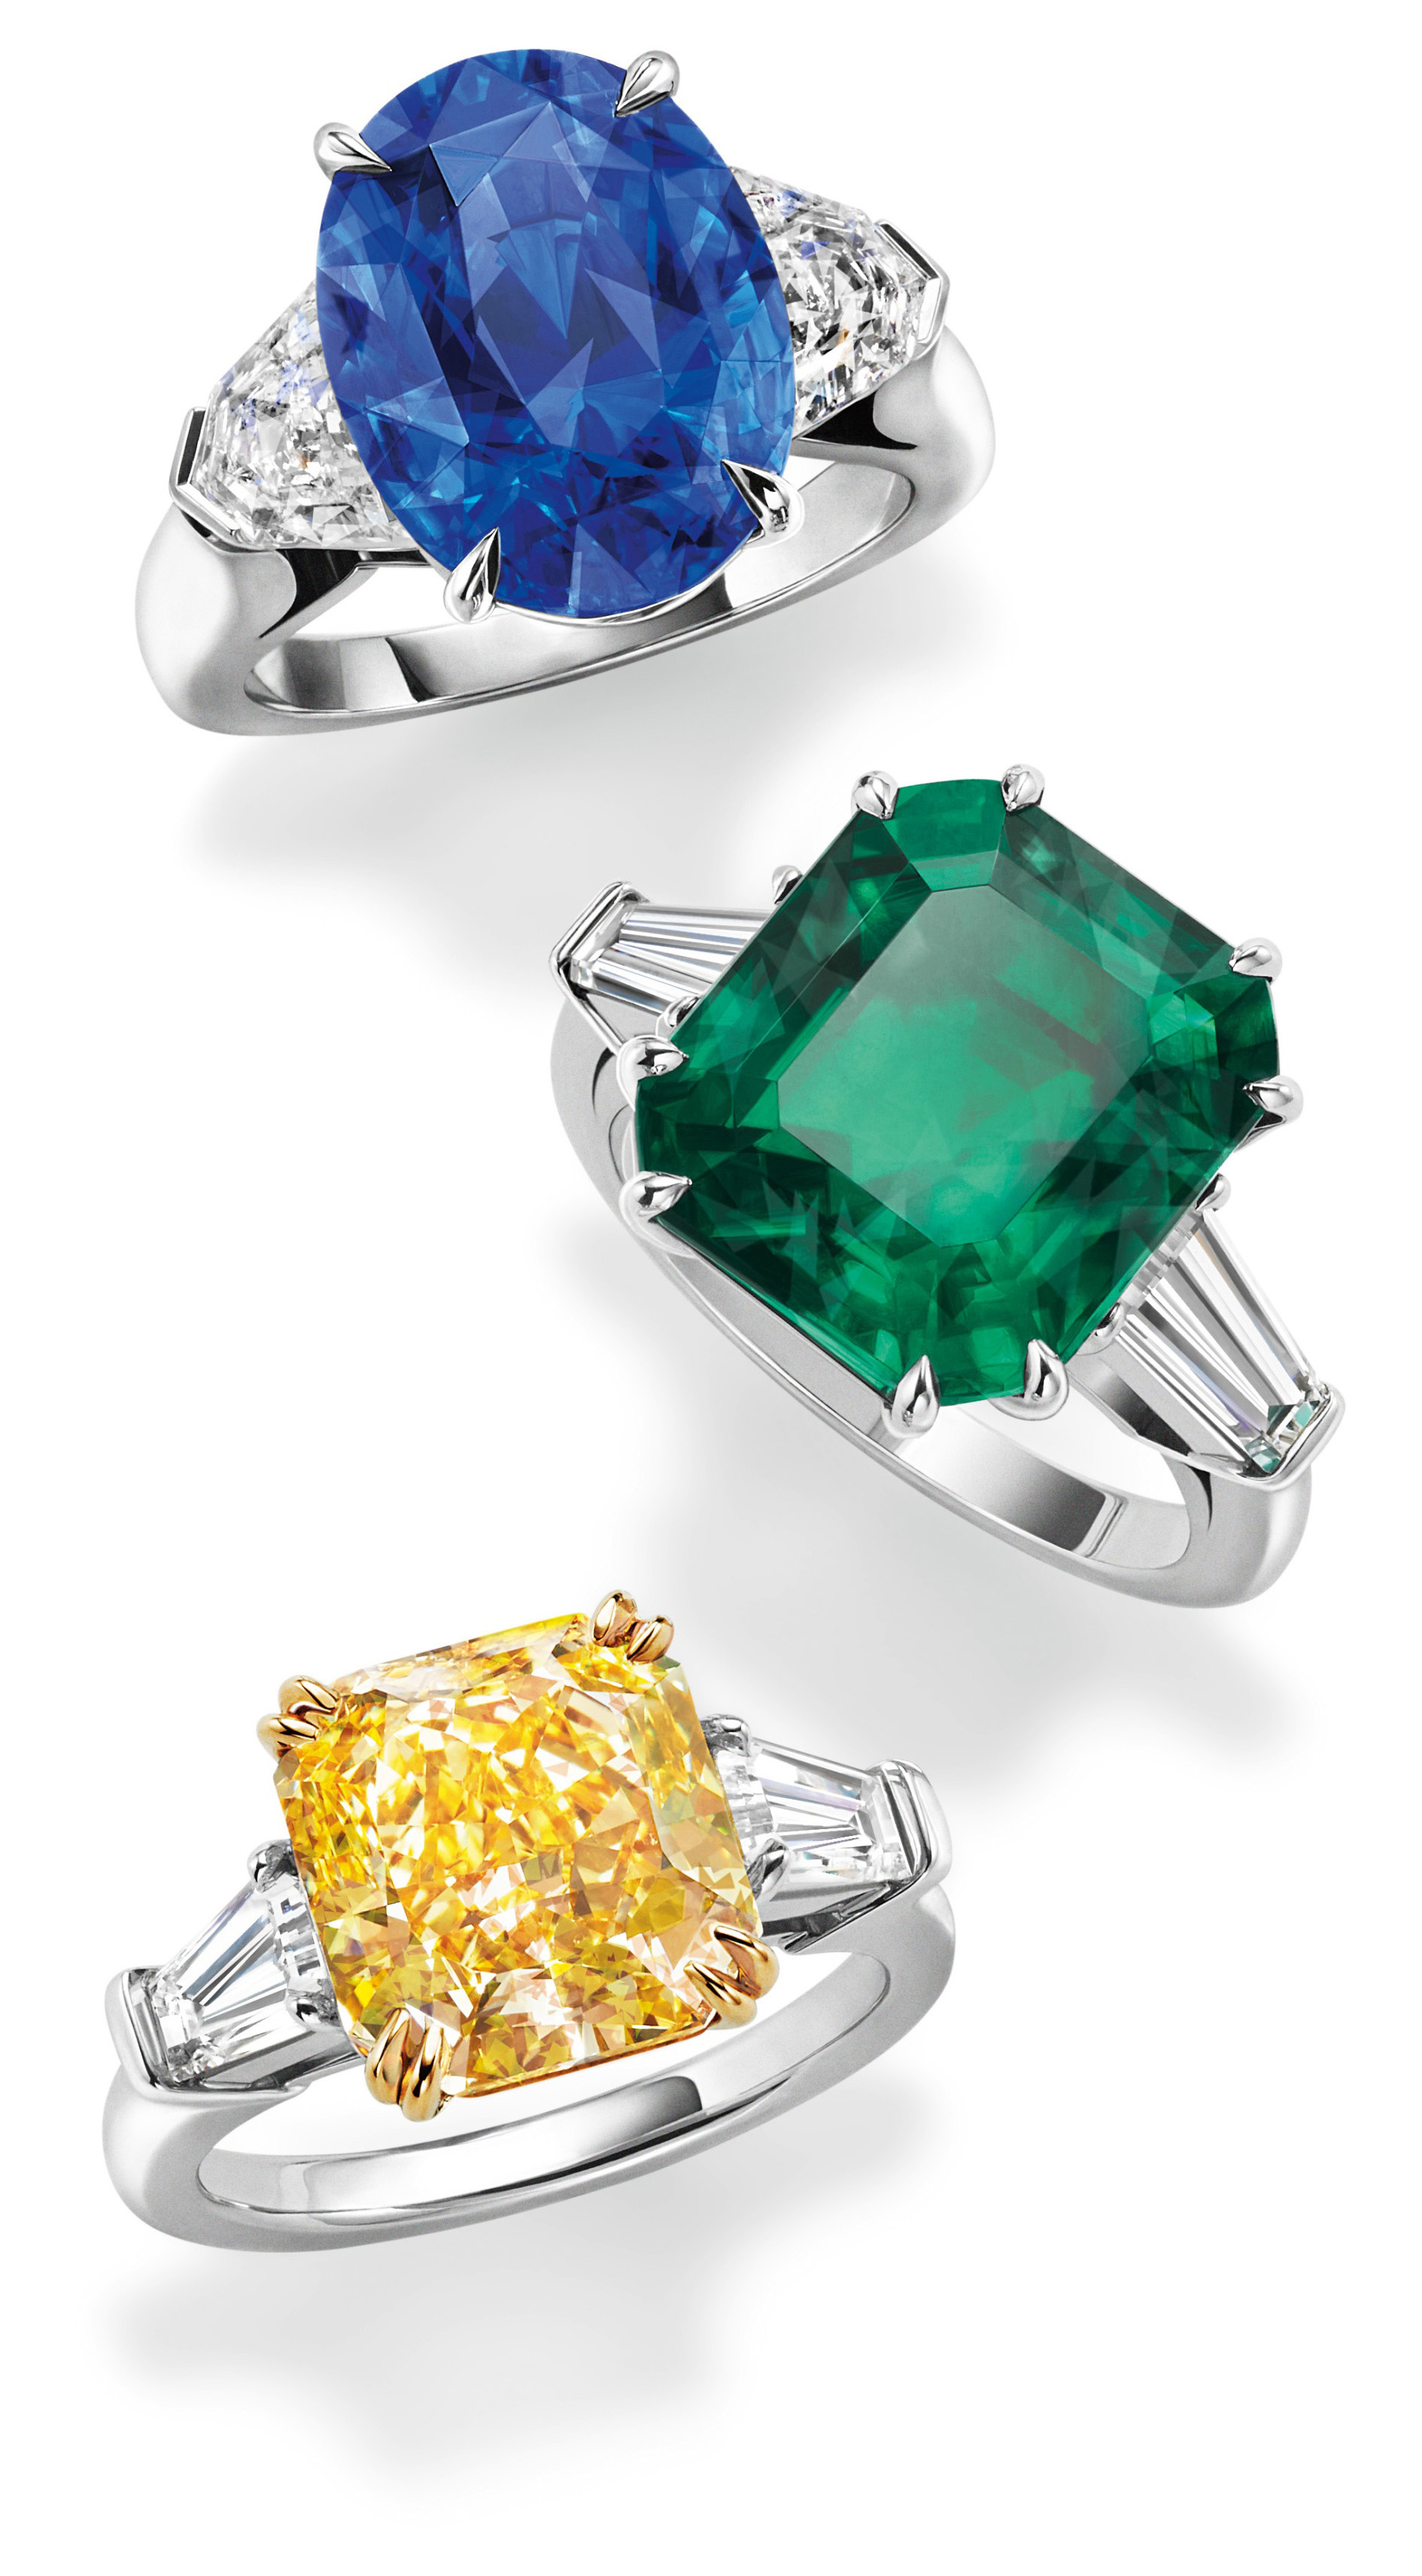 Harry Winston rings with an oval sapphire, an emerald cut emerald and a cushion cut yellow diamond